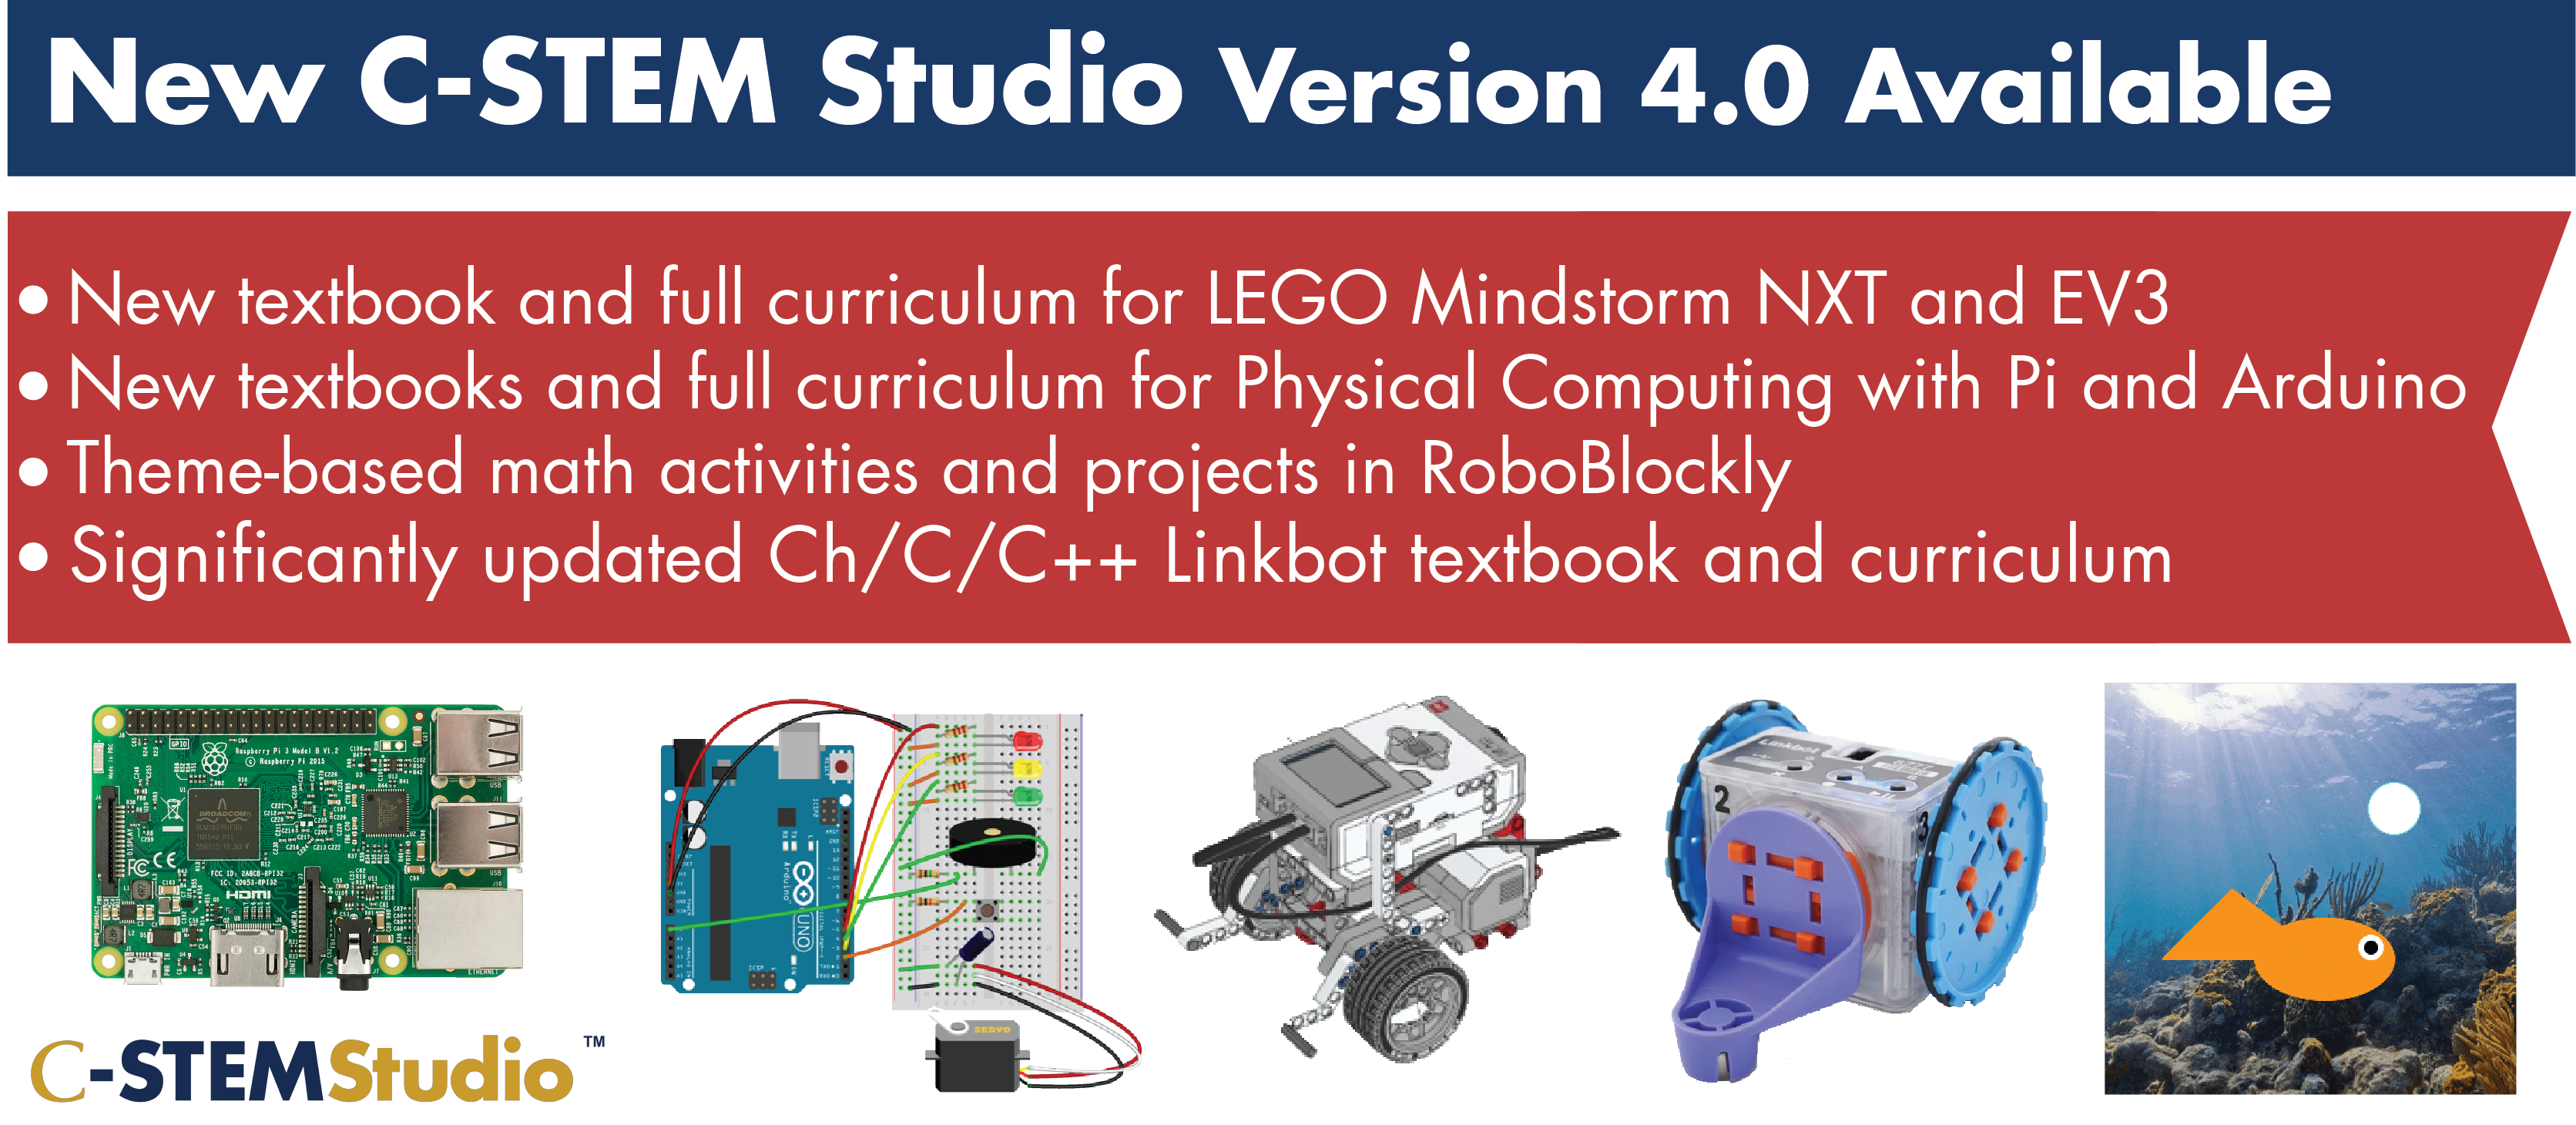 C-STEM Studio v4.0 released!